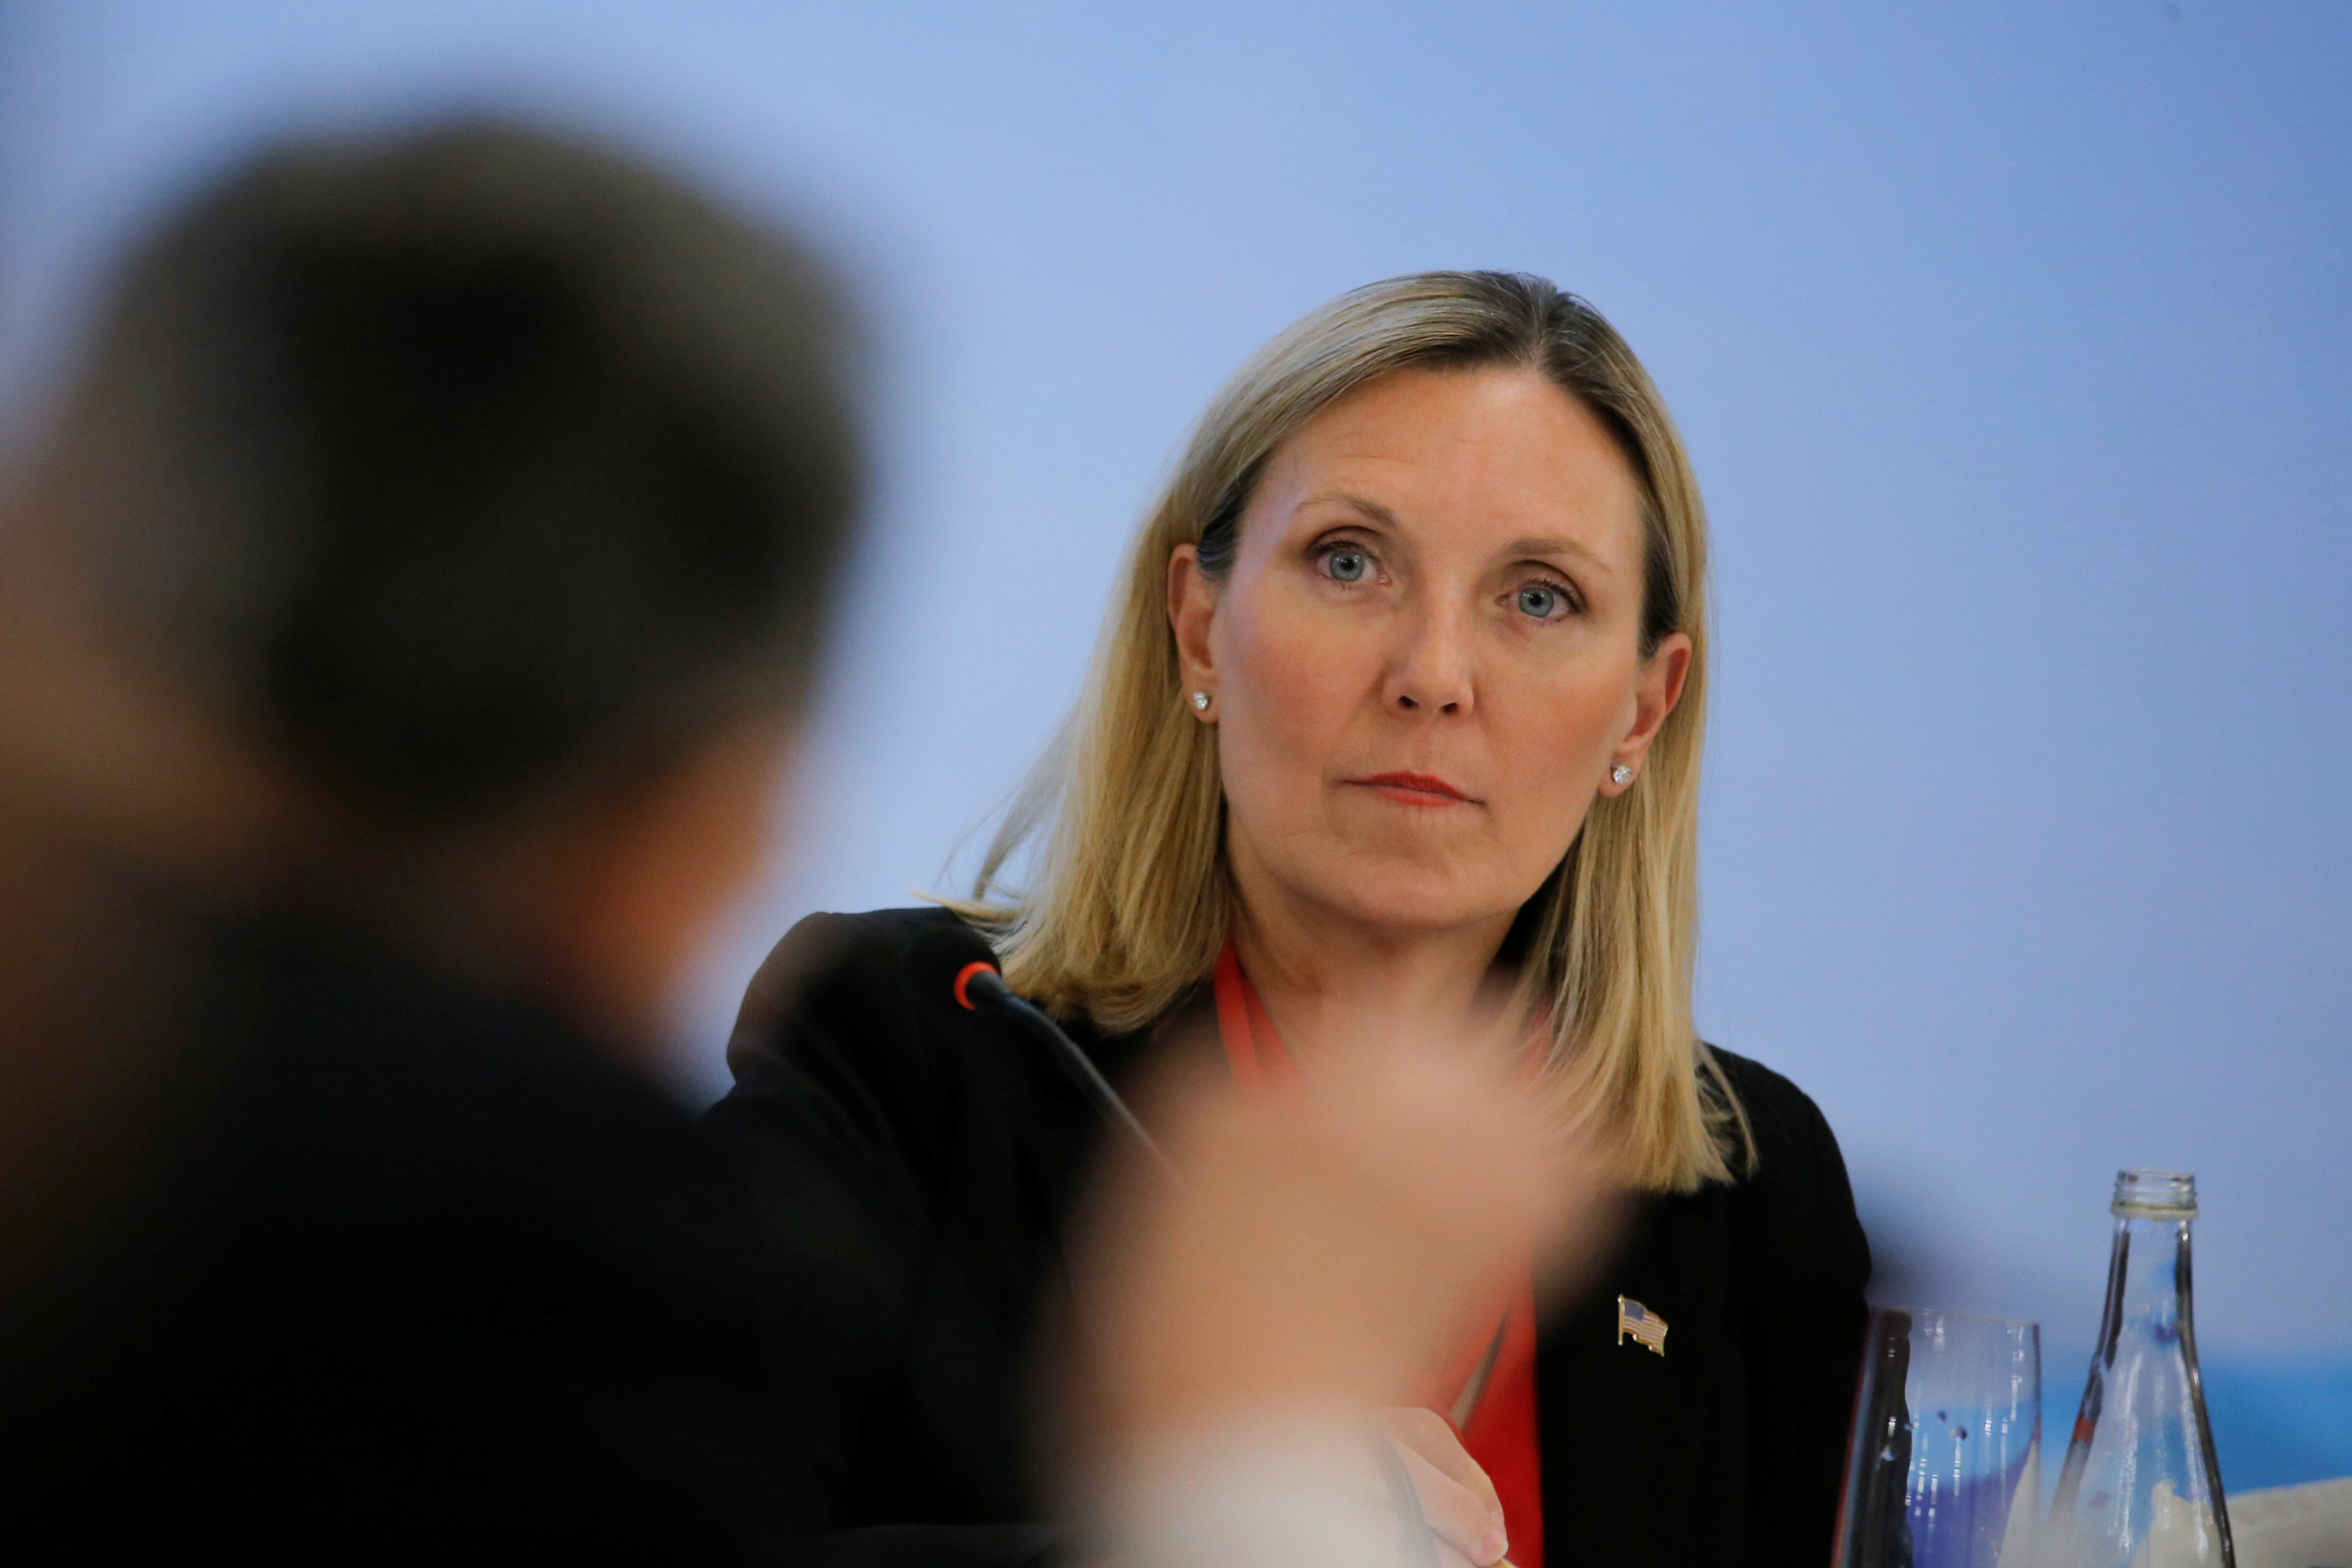 FILE PHOTO: U.S. Under Secretary of State Andrea Thompson attends a panel discussion after a Treaty on the Non-Proliferation of Nuclear Weapons (NPT) conference in Beijing, China January 31, 2019. REUTERS/Thomas Peter/Pool